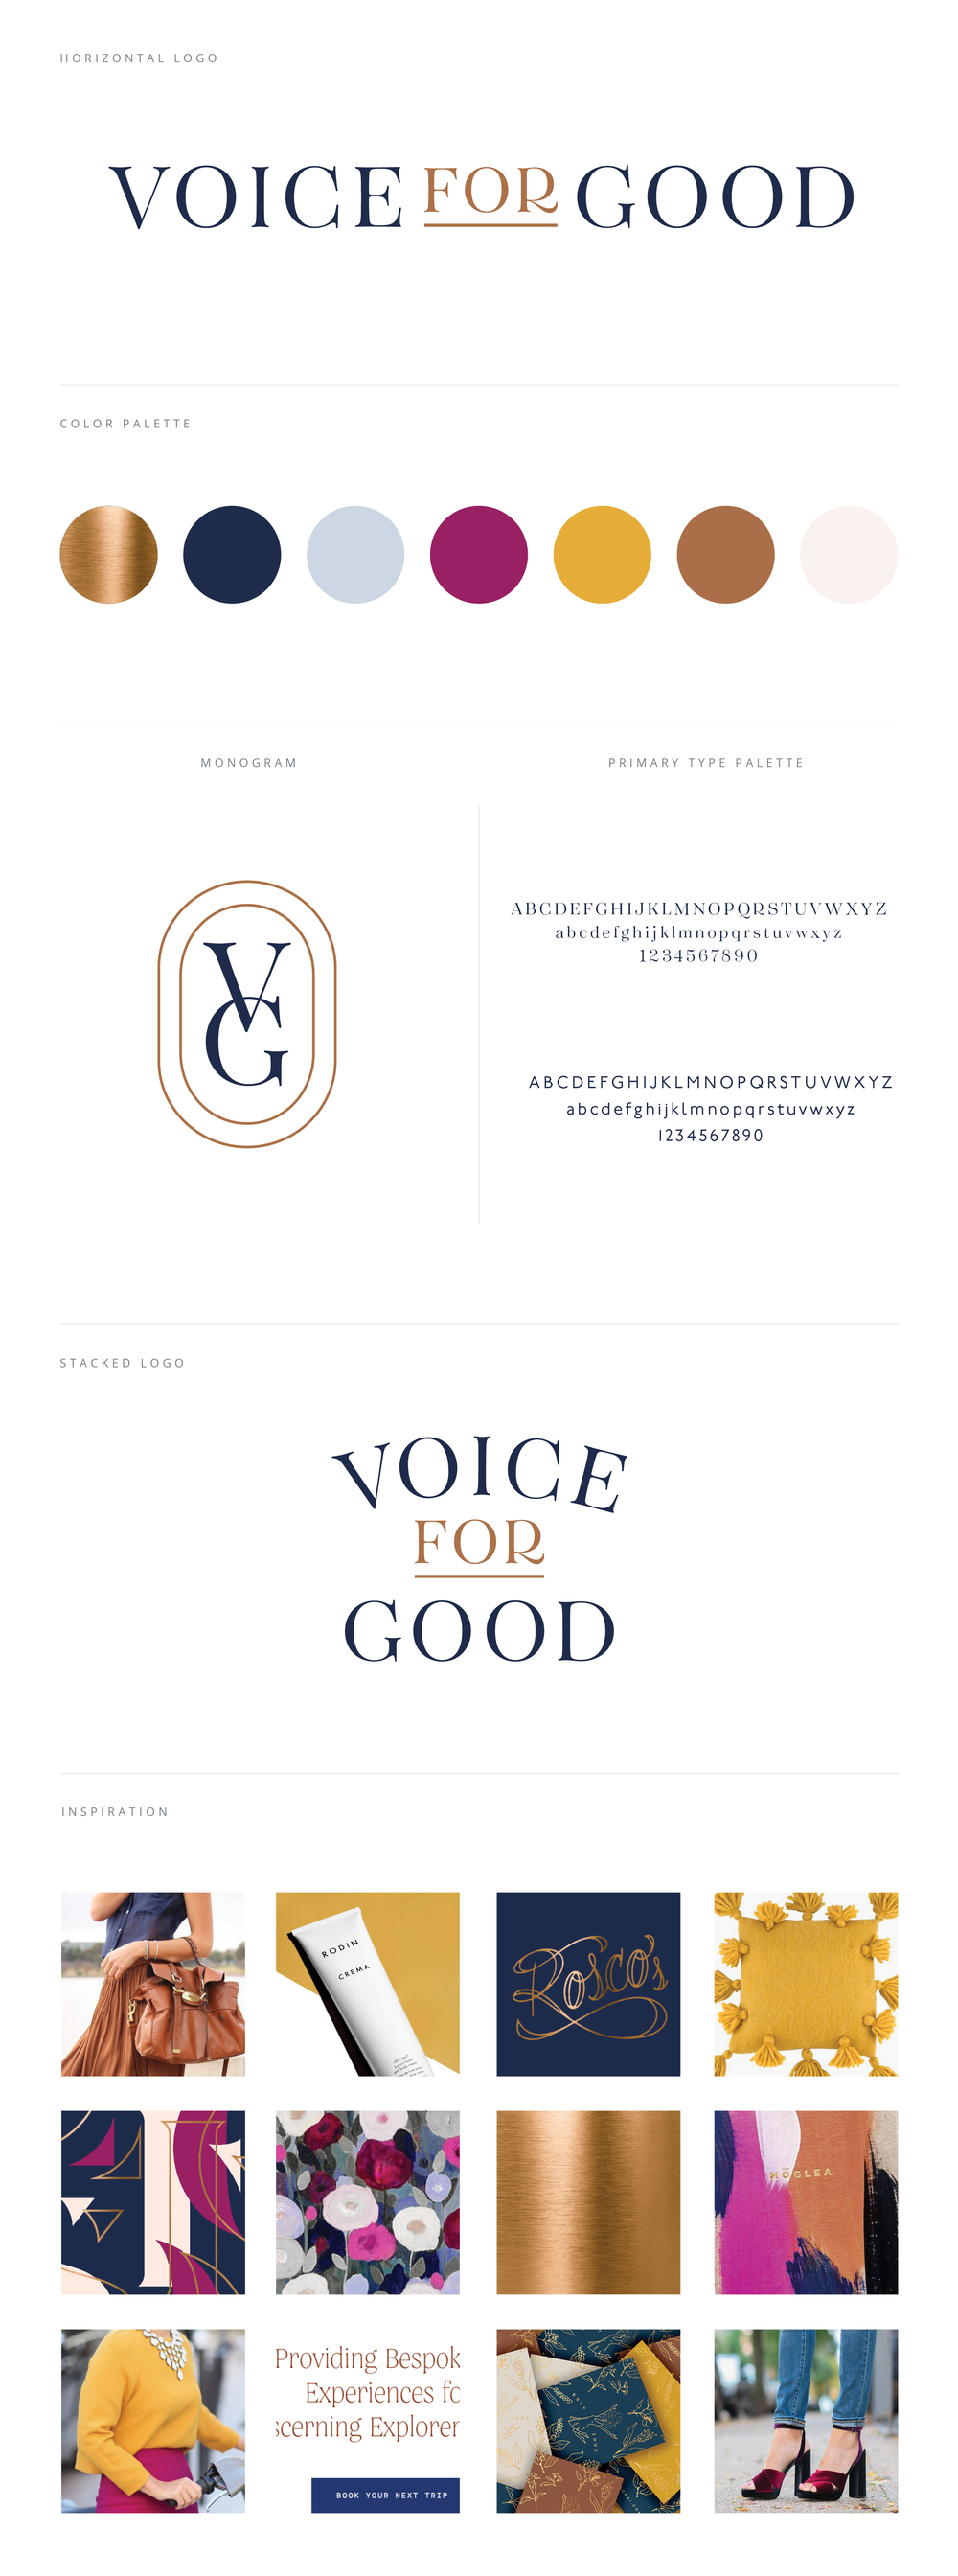 Voice for Good Brand Board by Janessa Rae Design Creative